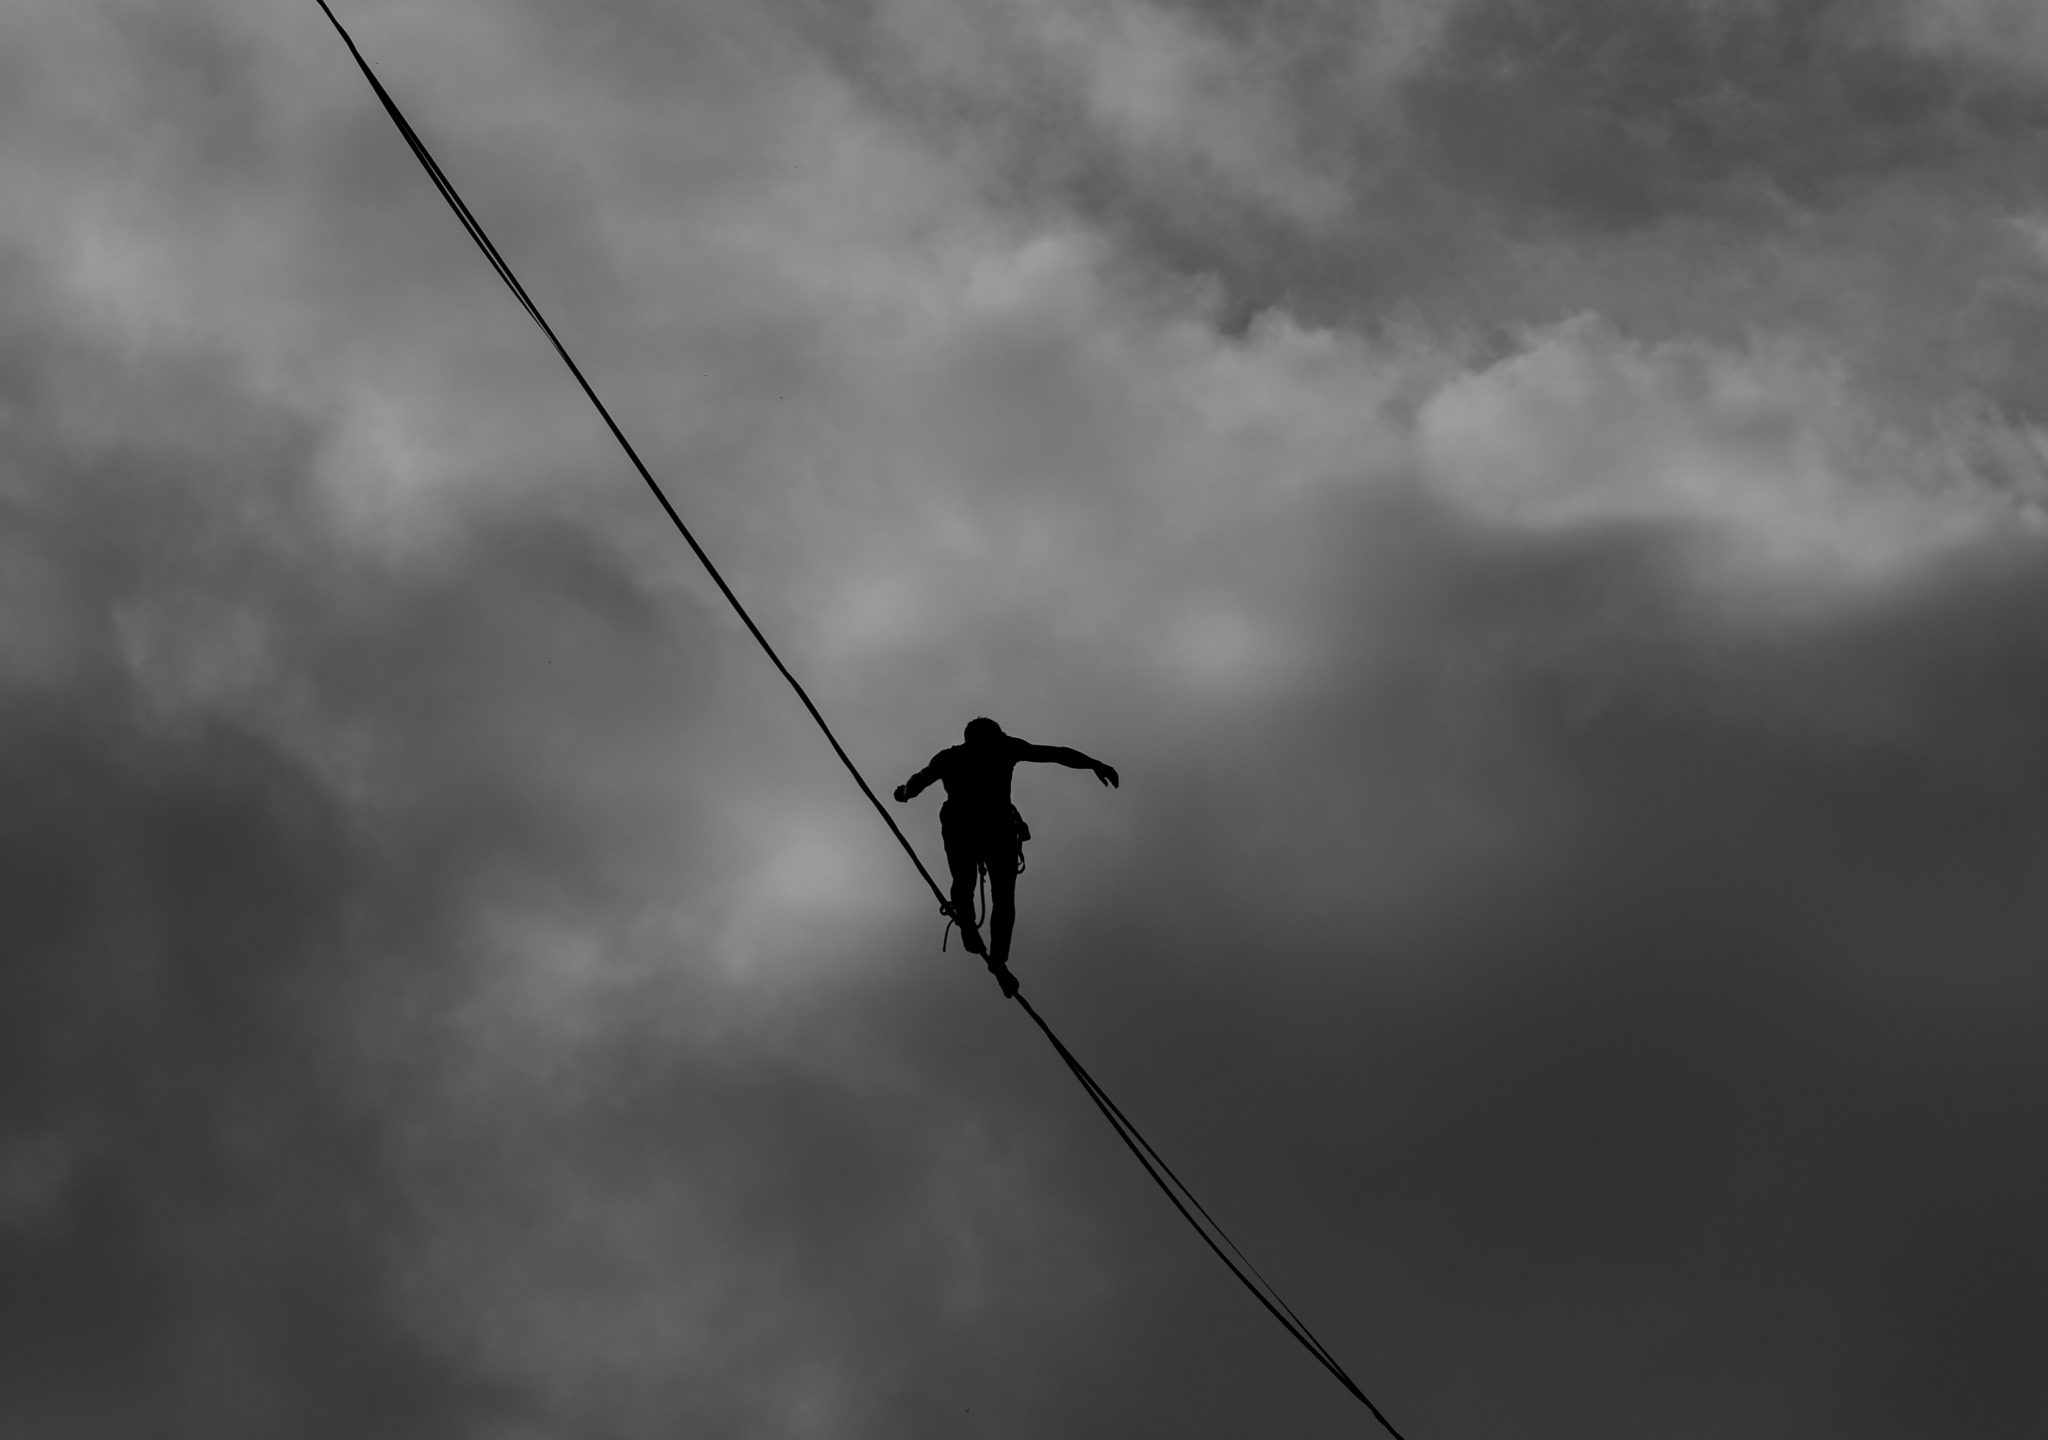 Man on tightrope